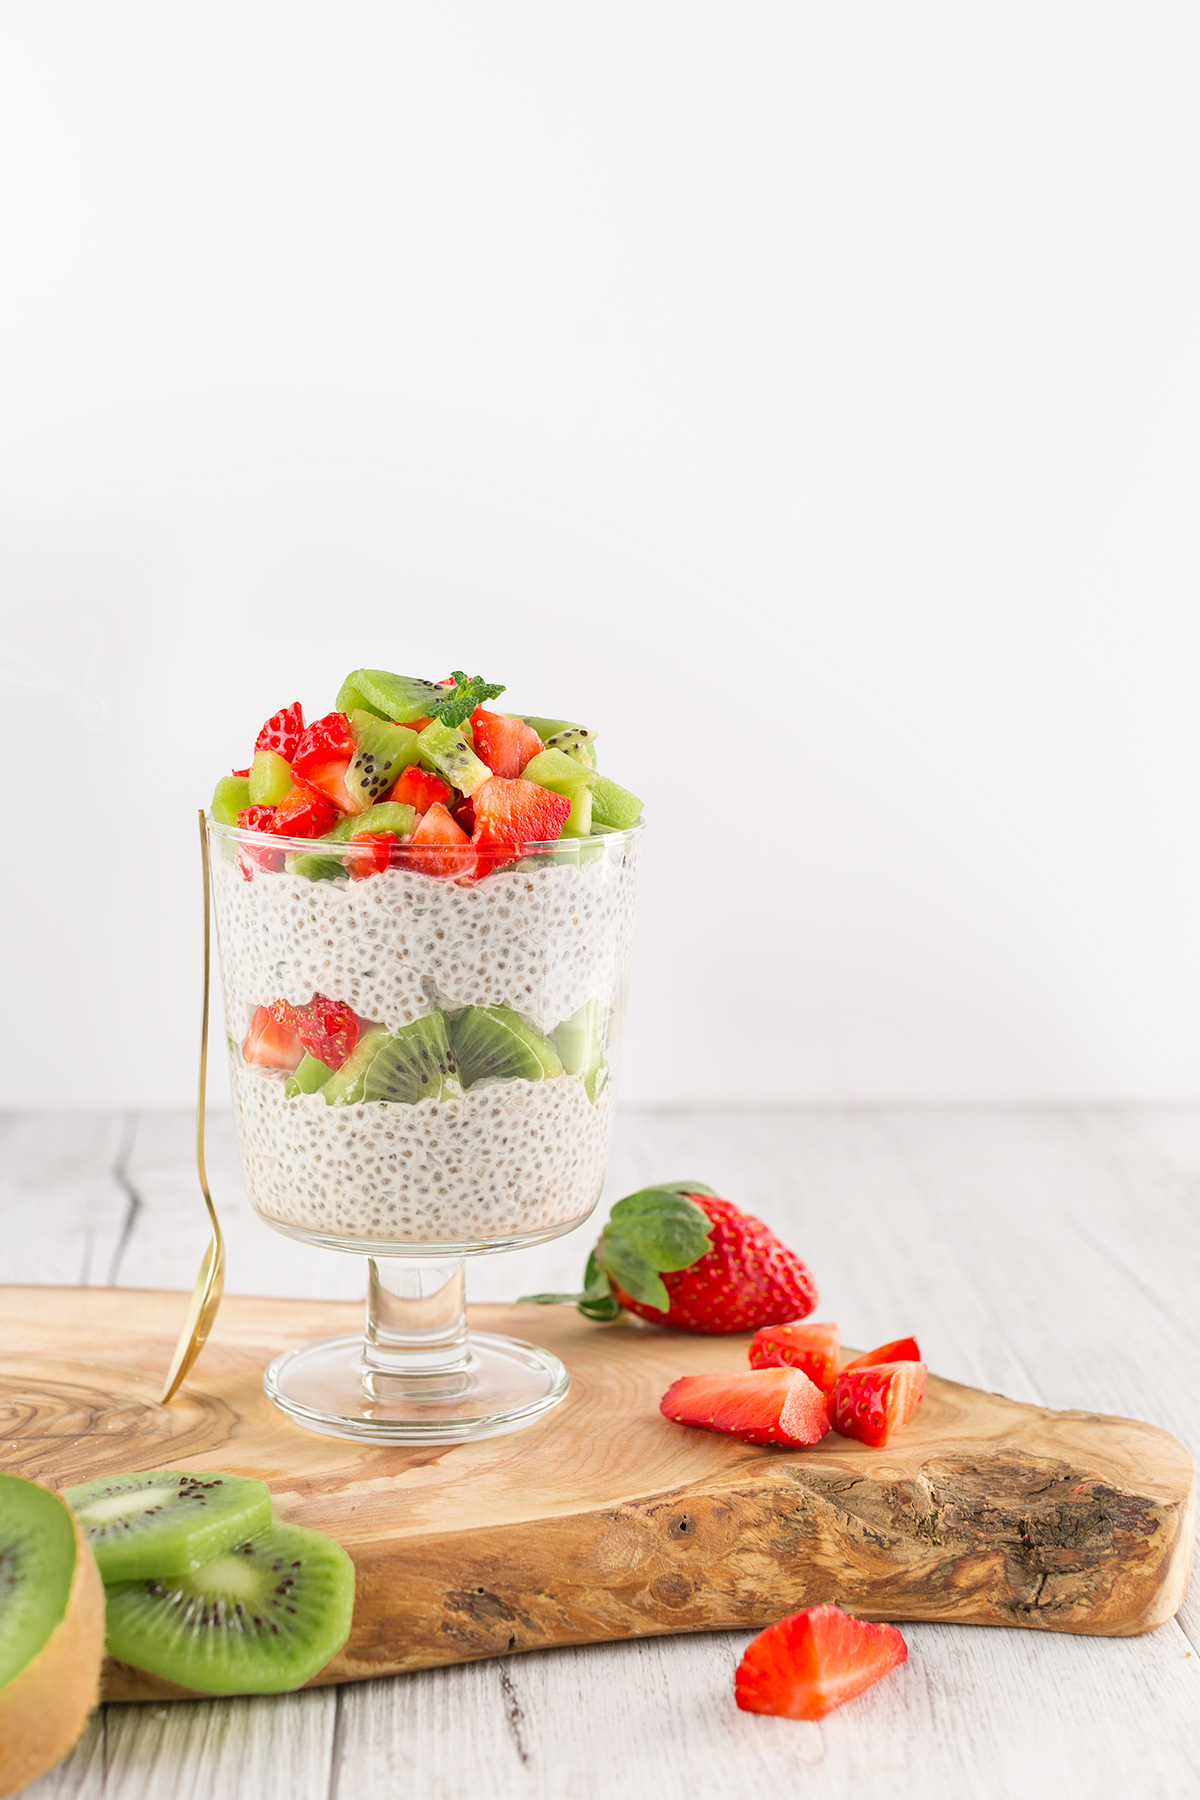 strawberry vanilla vegan simple CHIA SEED PUDDING basic recipe CHIA PUDDING ricetta base BUDINO di SEMI di CHIA vegan senza glutine fragole vaniglia